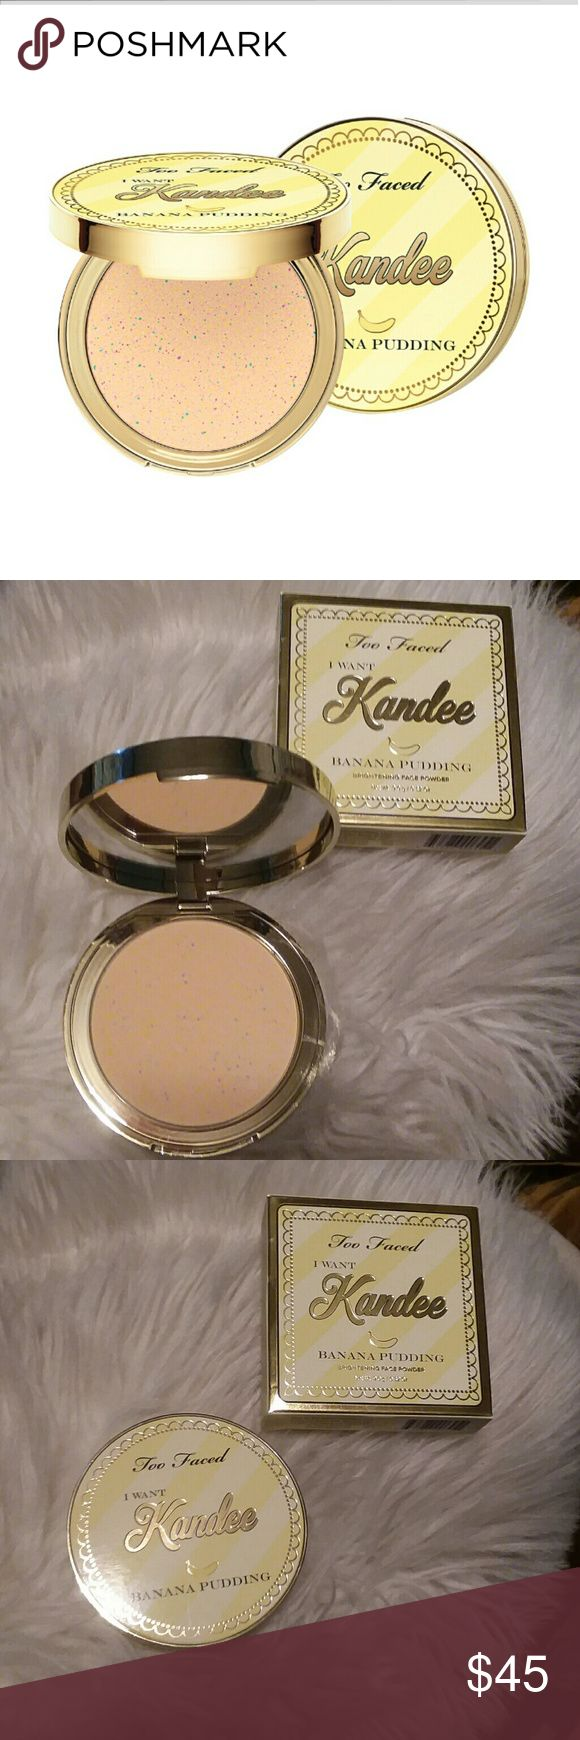 Too Faced Kandee Powder New in box limited edition sold out online Too Faced Makeup